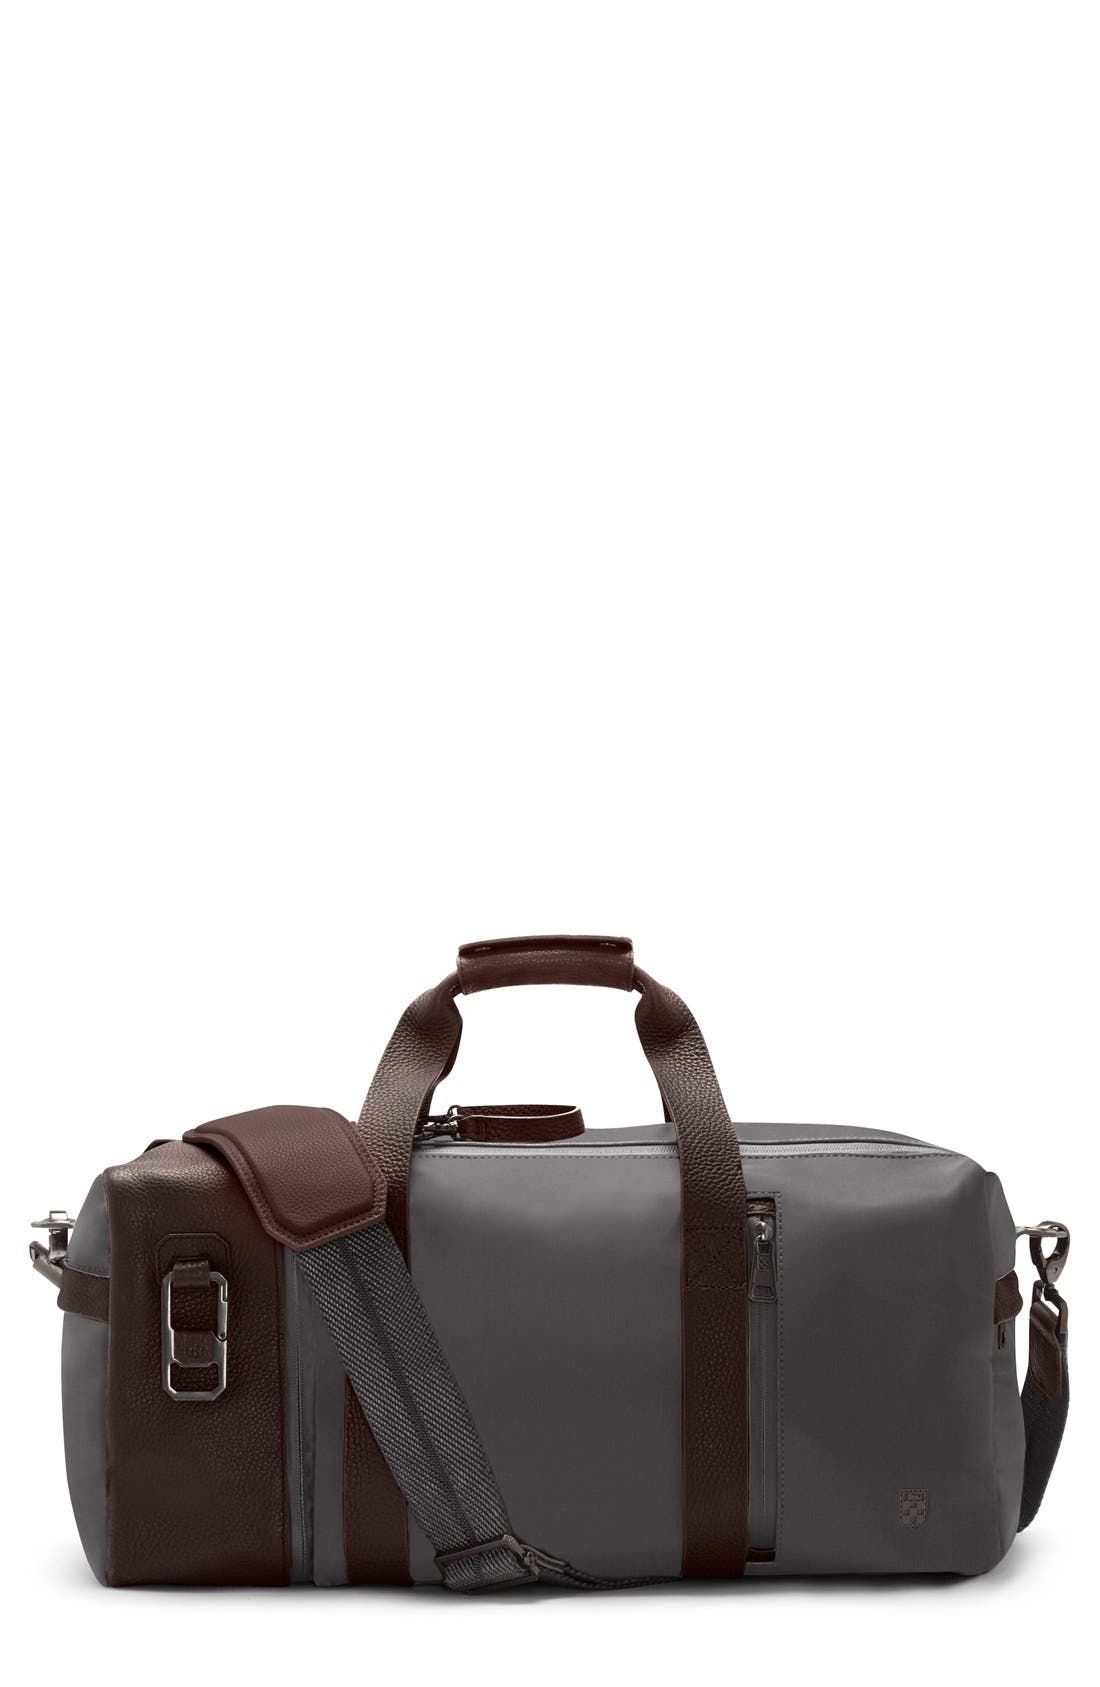 Alternate Image 1 Selected - Vince Camuto 'Mestr' Duffel Bag